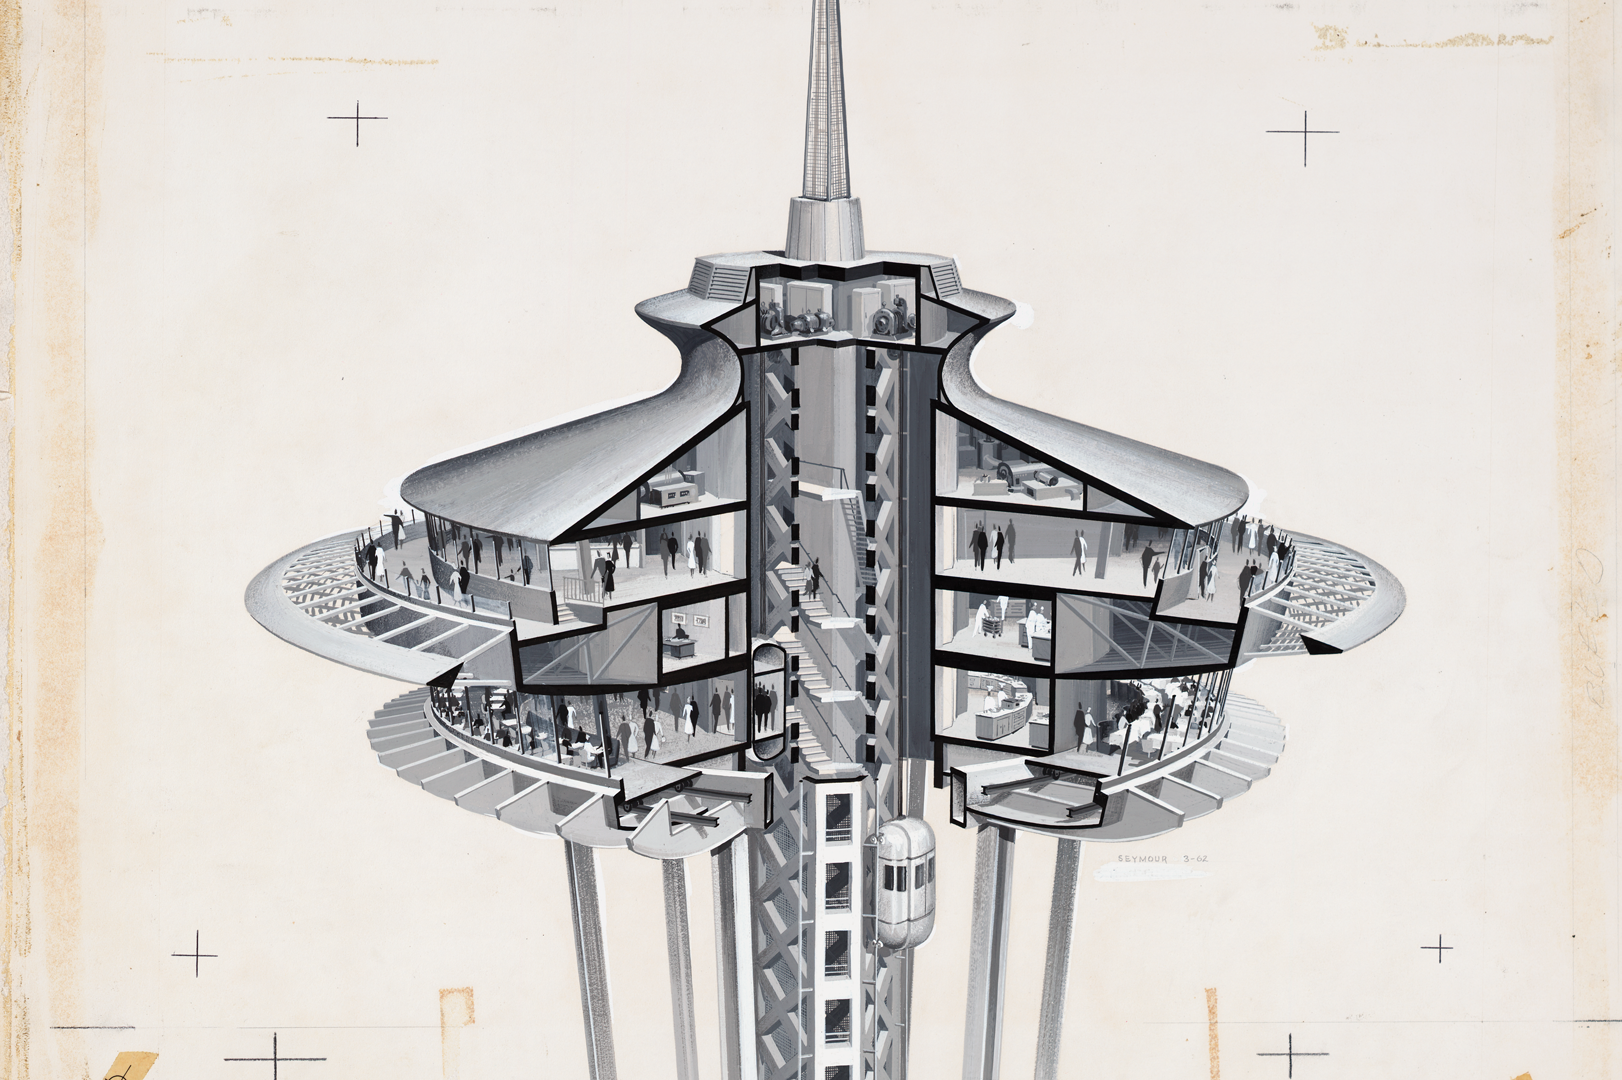 Kinetic Architecture and Aerial Rides: Towards a Media Archaeology of the Revolving Restaurant View by Synne Bull